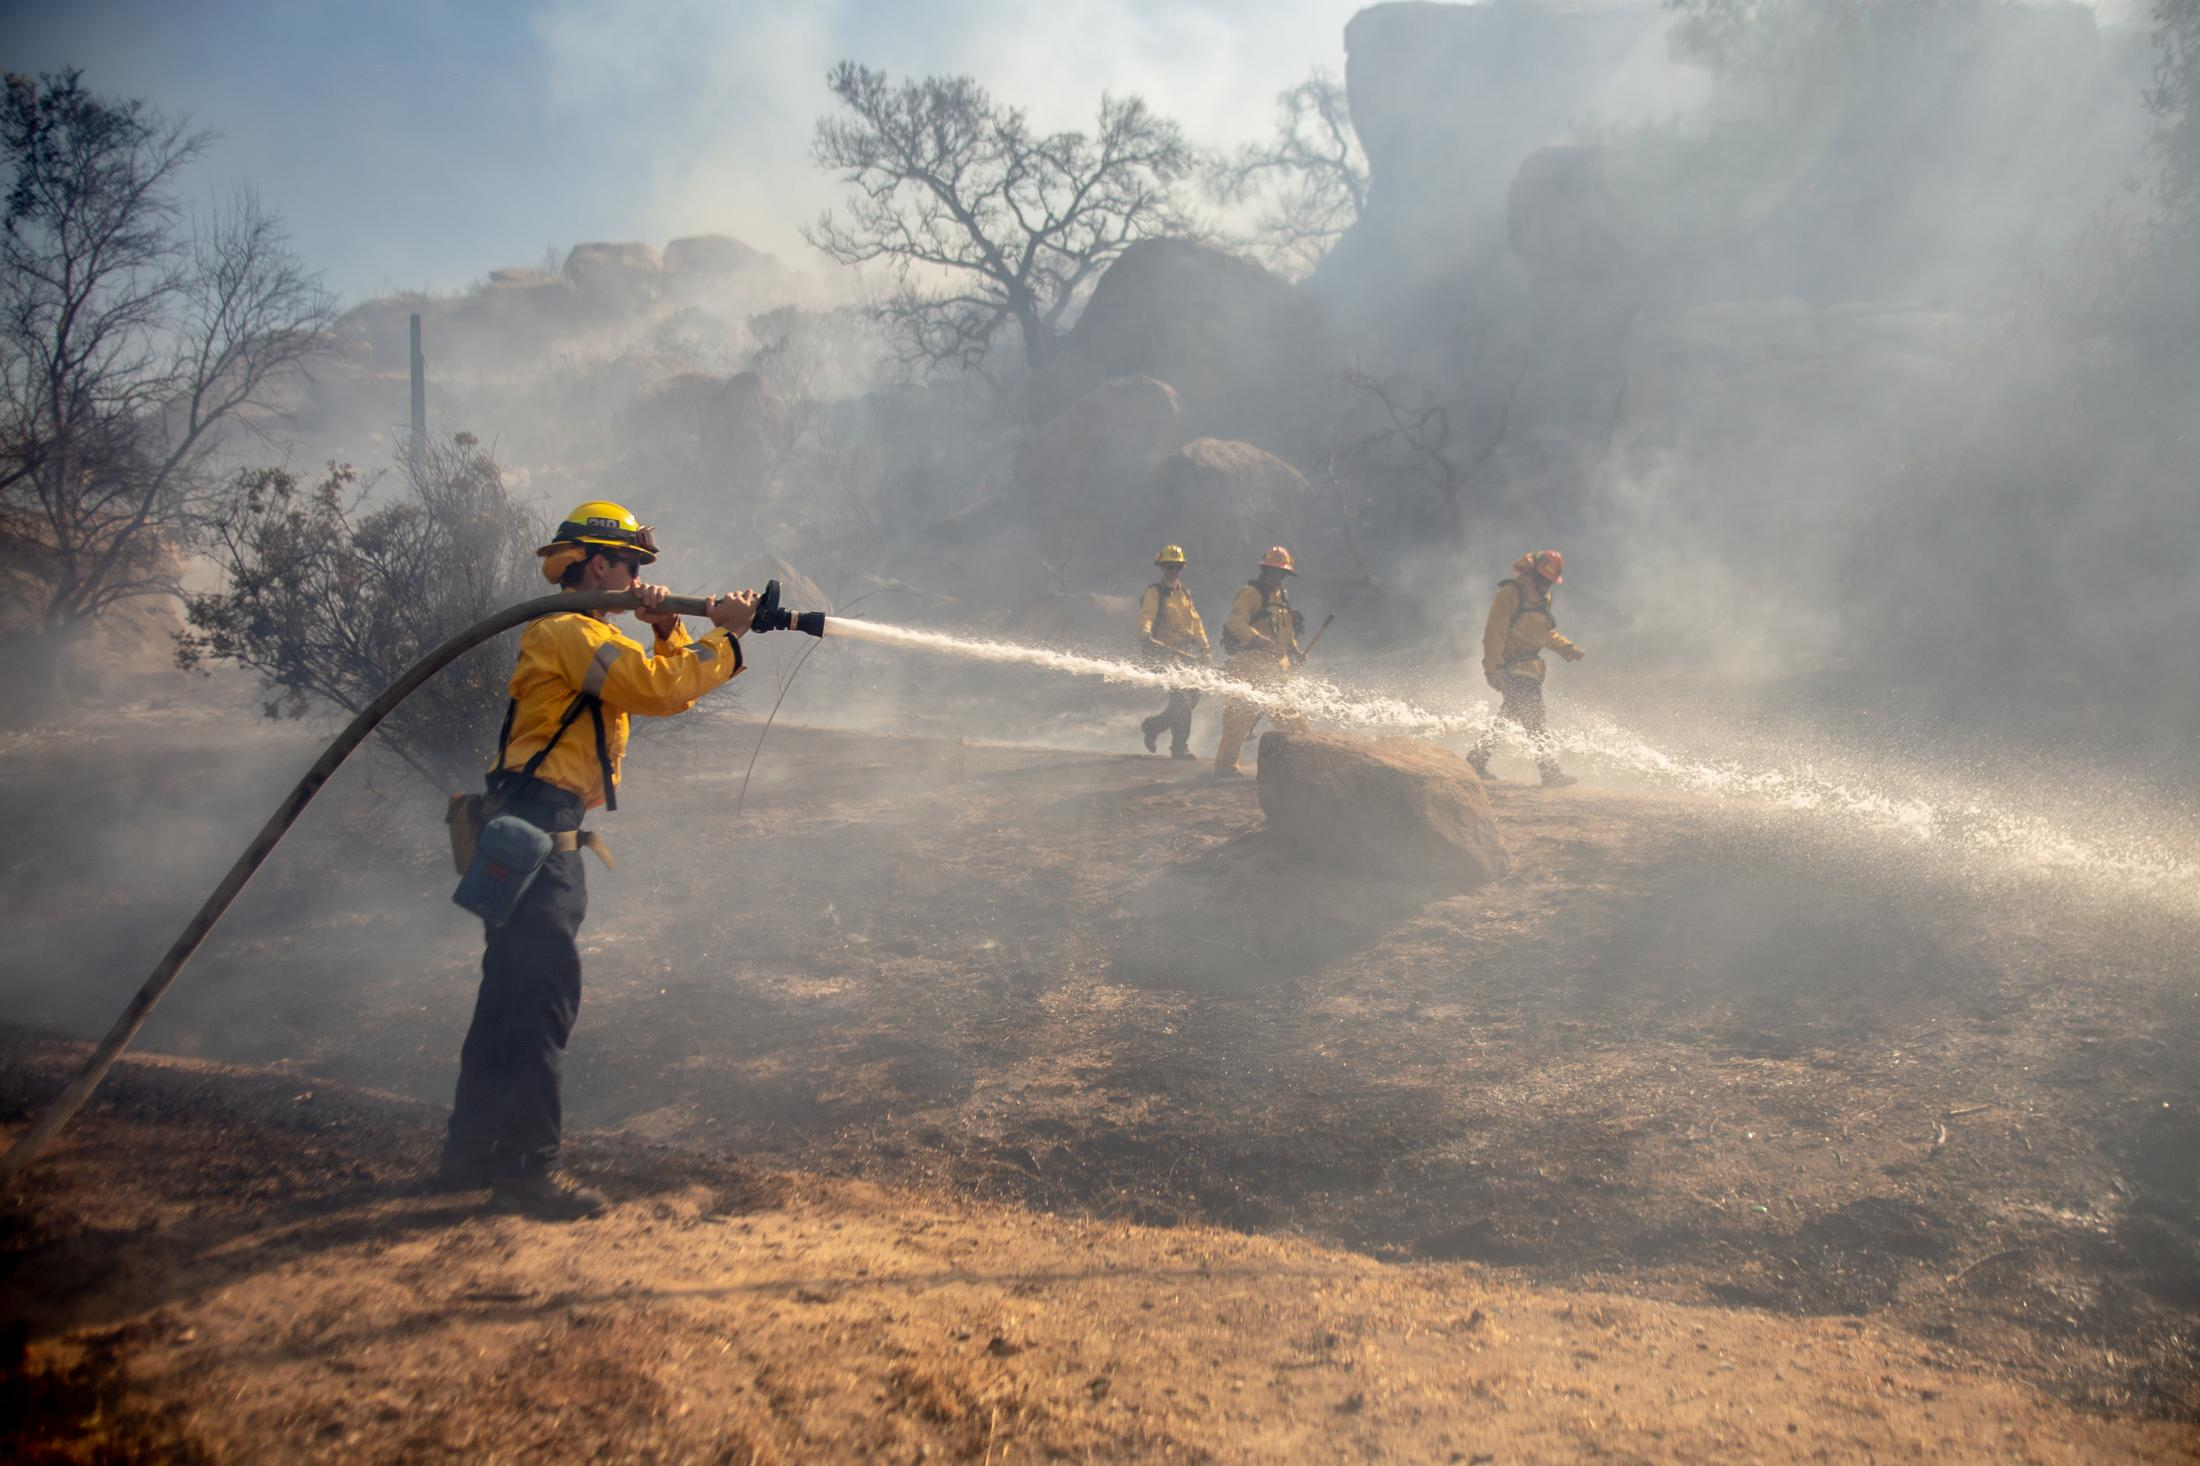 The state of California faced its worst fire season in history. One of the worst fires located in Los Angeles and Ventura County, named the Woolsey Fire. This wildfire burned; 96,949 acres and destroyed 1,643 structures. Three people reported to have died in the blaze, and over a quarter-million evacuated. Firefighters put out any remaining hotspots from the passing wildfire.